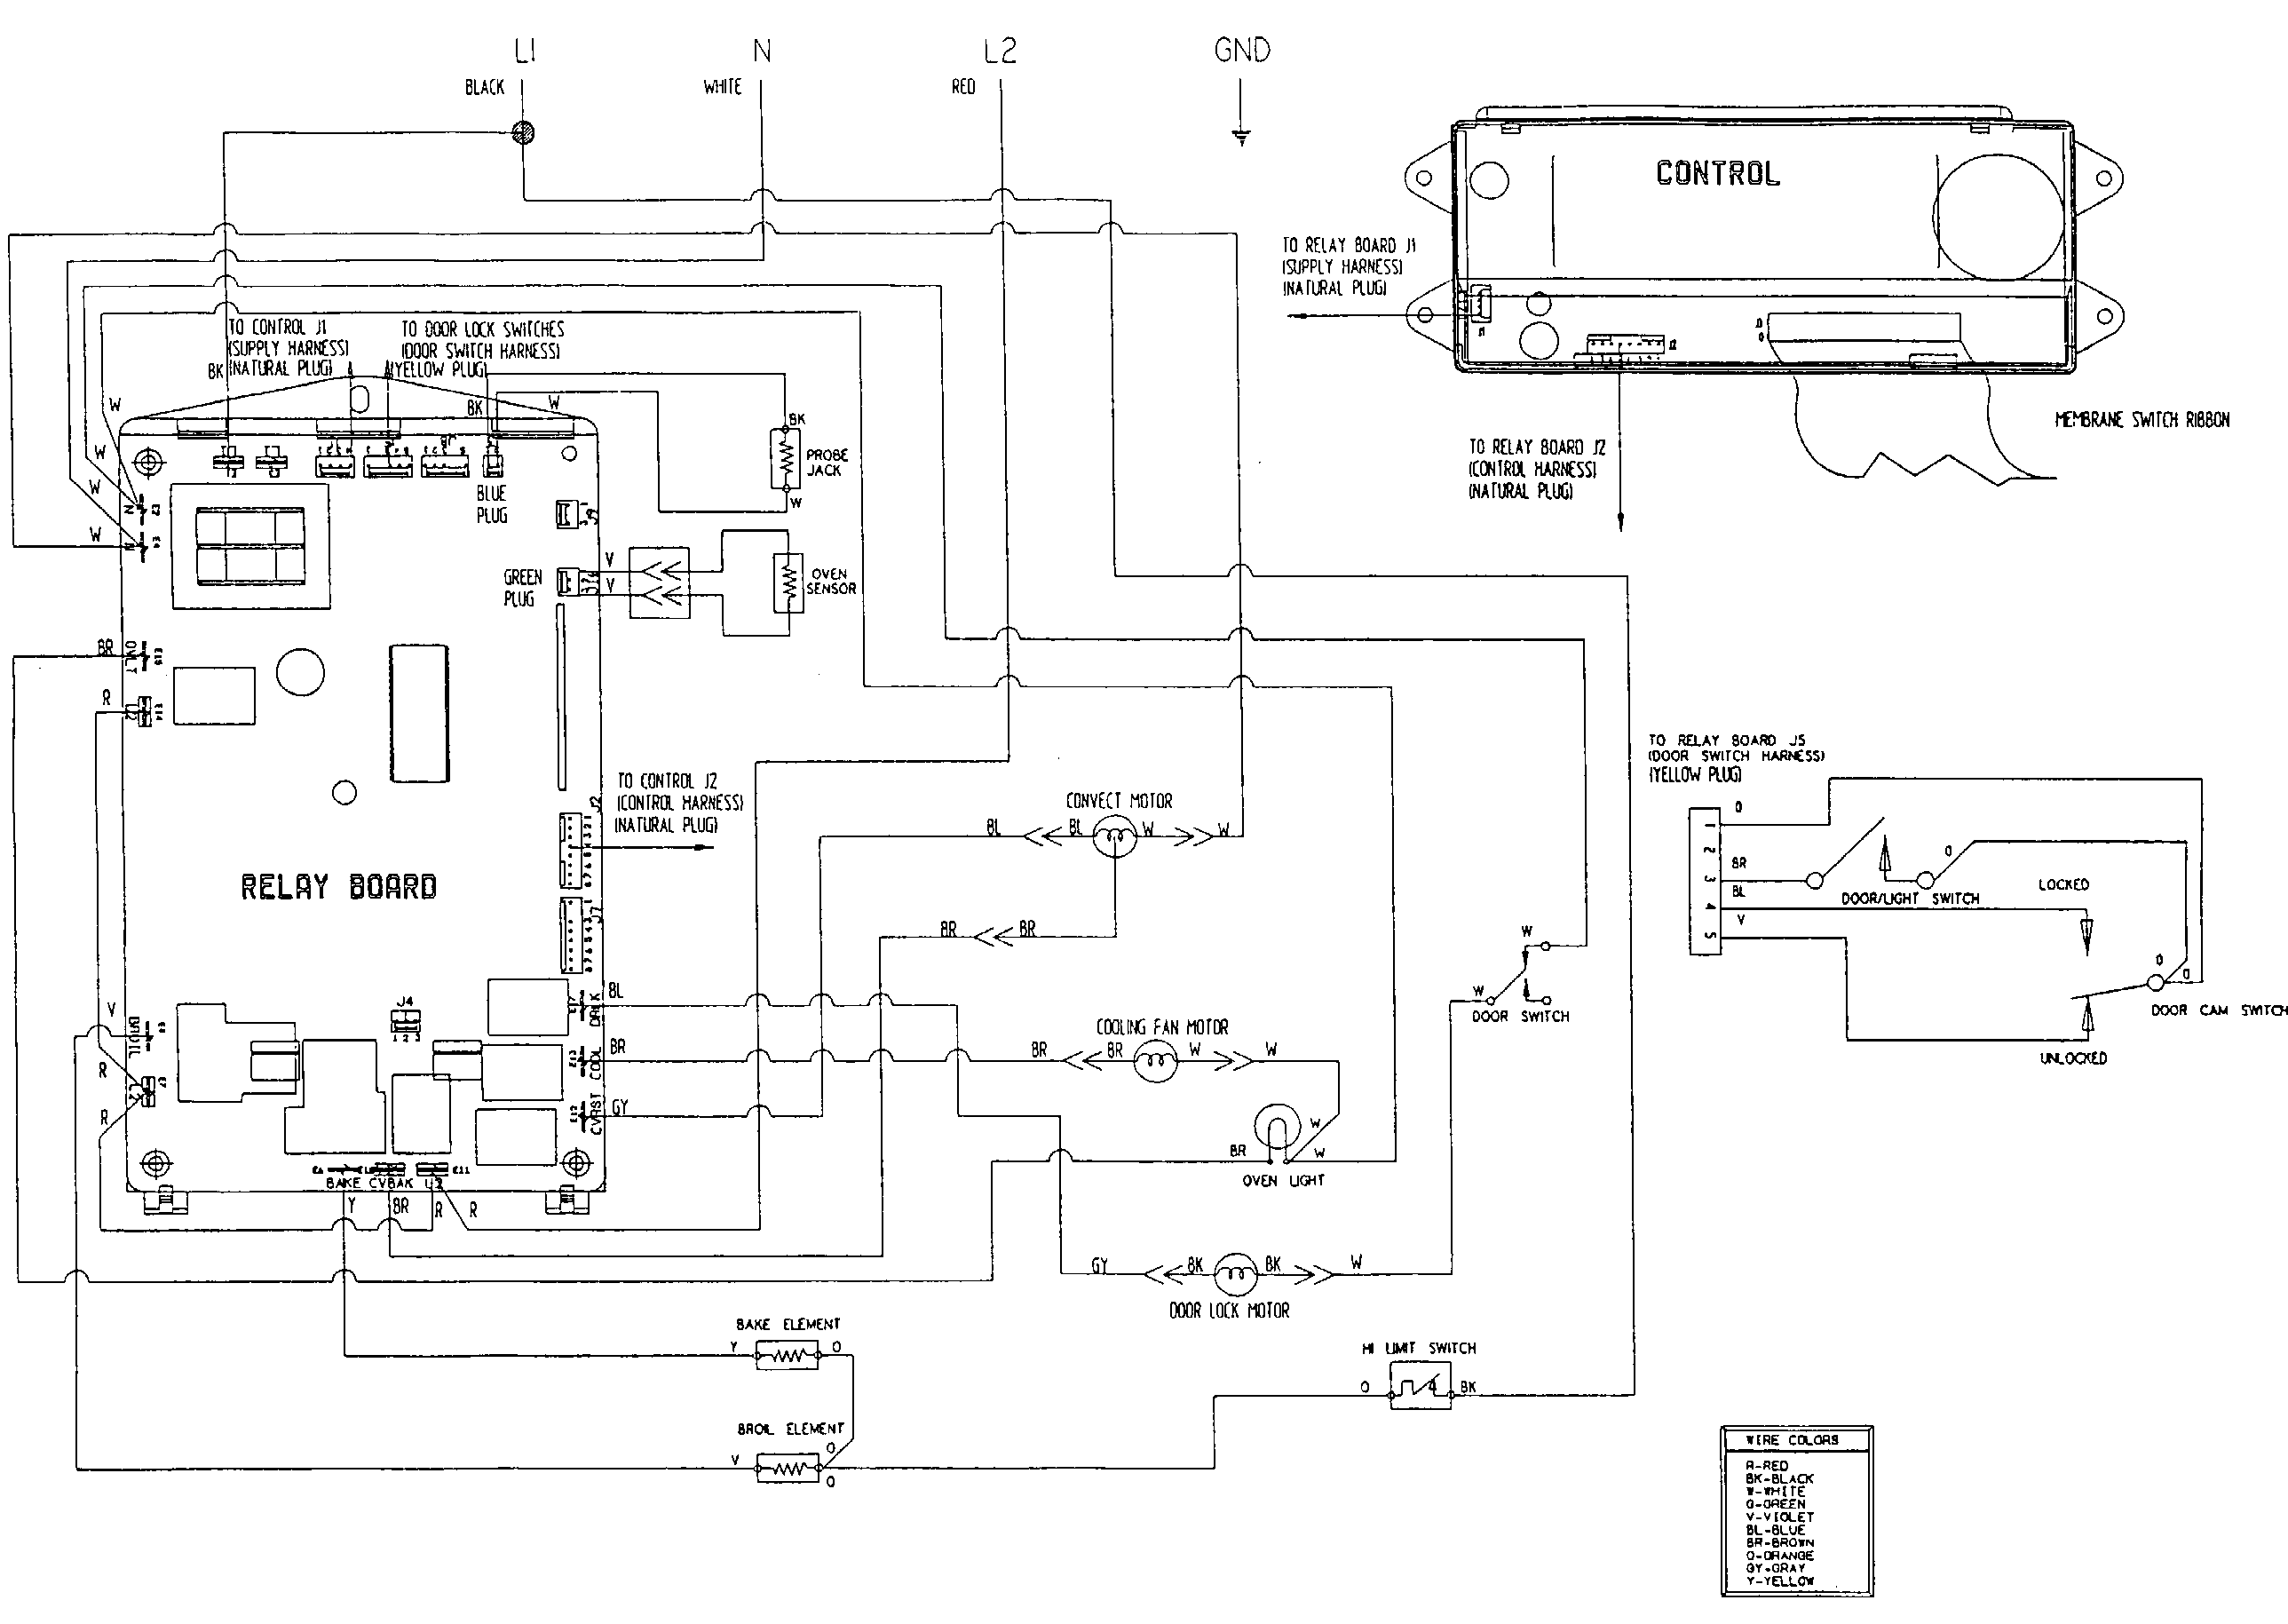 wiring diagram smeg oven schema wiring diagram Schematic Oven Electric Thermostat Wb20t10012 kenmore gas range wiring diagram best wiring library oven fried okra wiring diagram smeg oven